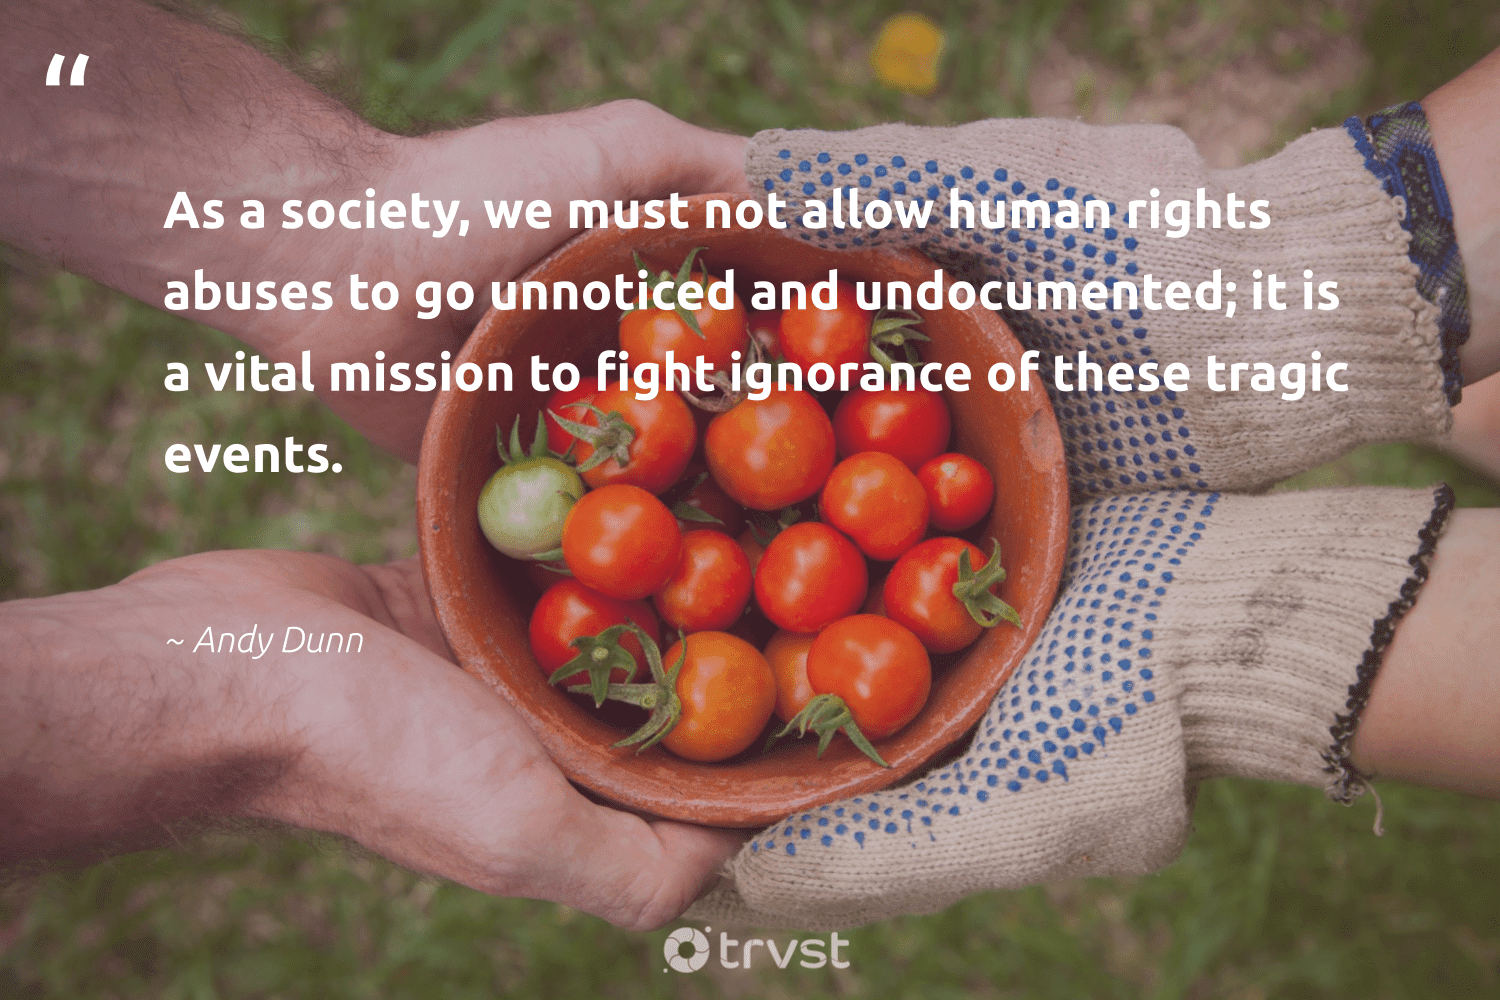 """""""As a society, we must not allow human rights abuses to go unnoticed and undocumented; it is a vital mission to fight ignorance of these tragic events.""""  - Andy Dunn #trvst #quotes #humanrights #society #socialchange #bethechange #dogood #thinkgreen #giveback #socialimpact #strongercommunities #changetheworld"""